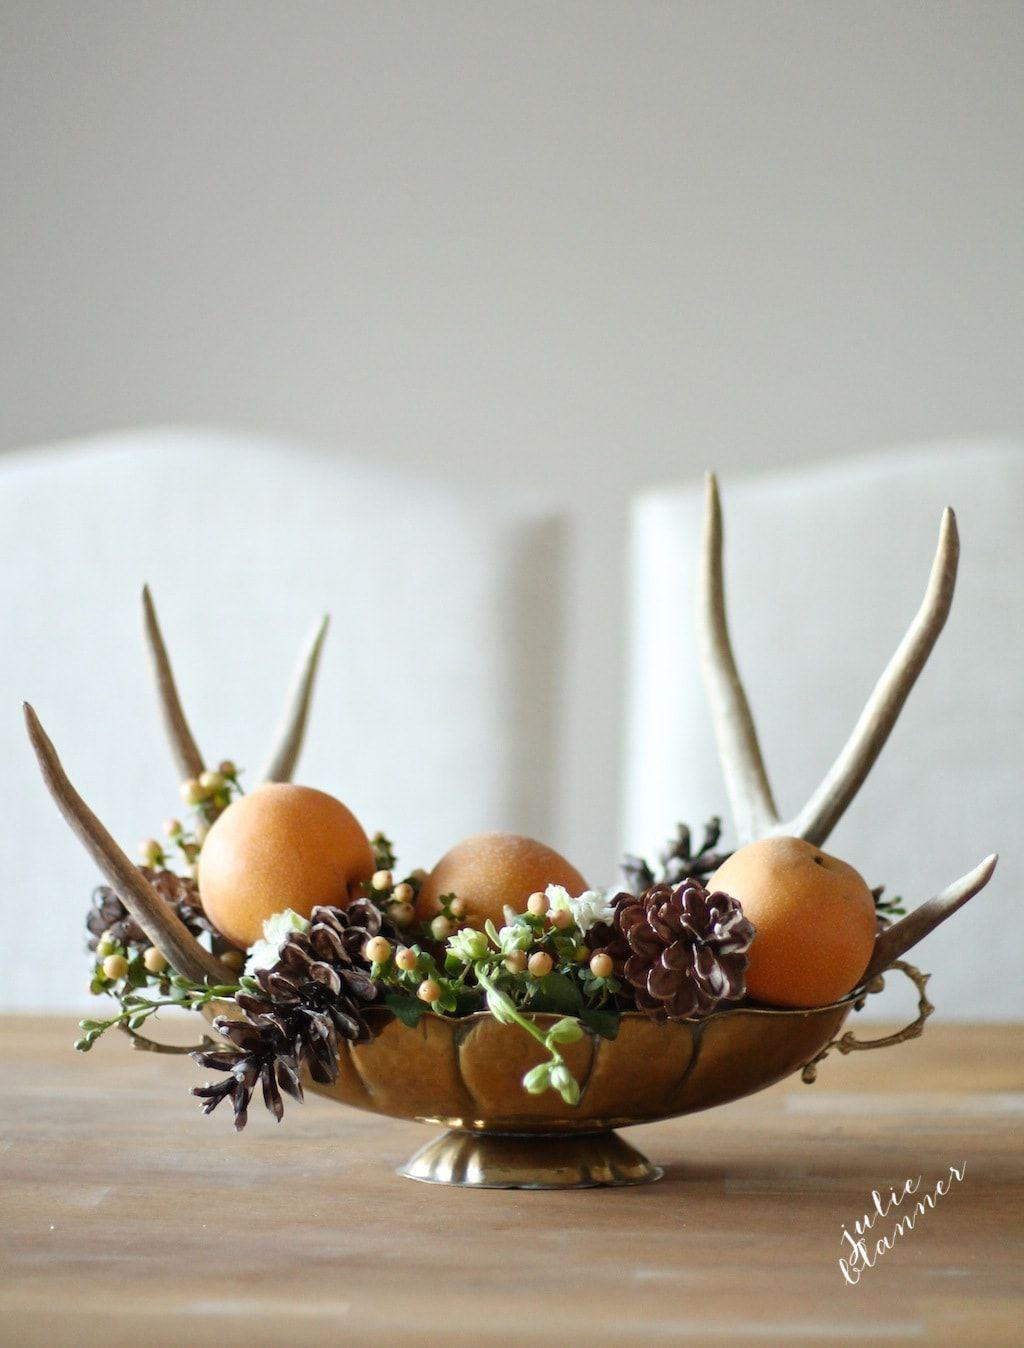 "<p>The best thing about this centerpiece (other than the antlers) is that it only takes five minutes to set up.</p><p><strong>Get the tutorial at <a href=""https://julieblanner.com/5-minute-thanksgiving-centerpiece/"" rel=""nofollow noopener"" target=""_blank"" data-ylk=""slk:Julie Blanner."" class=""link rapid-noclick-resp"">Julie Blanner. </a></strong></p>"